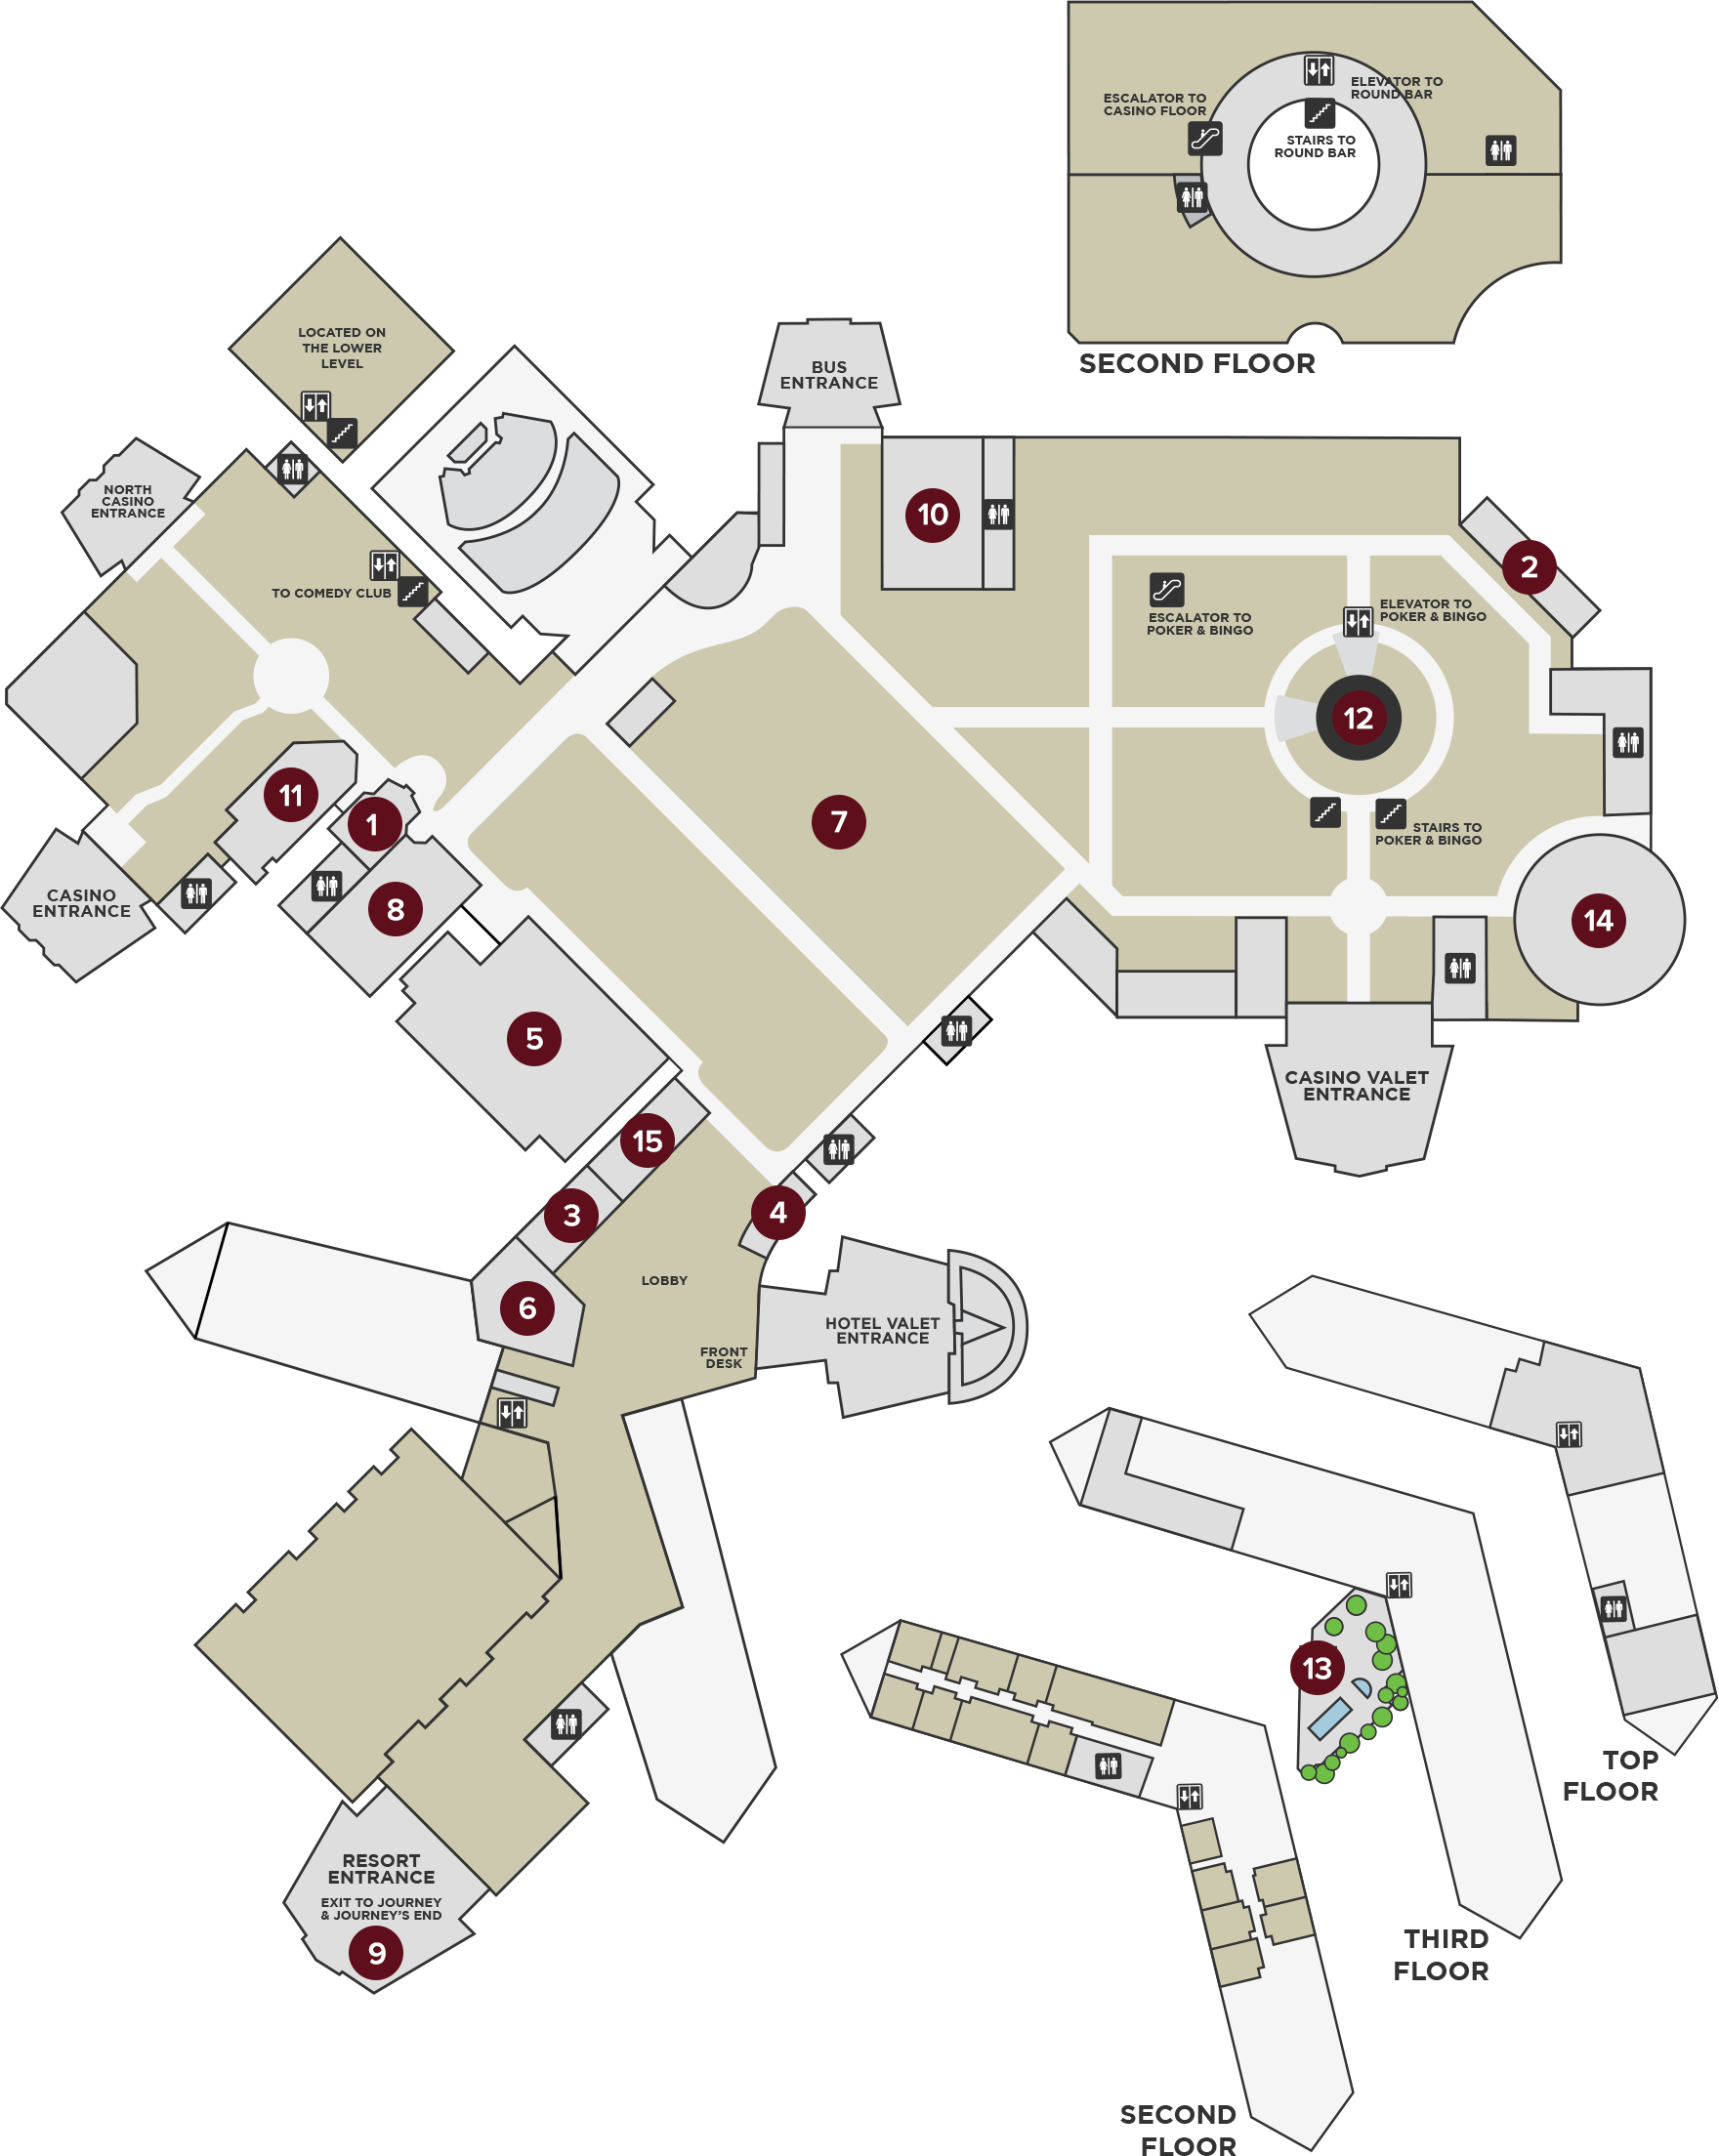 Pechanga hotel and casino address which casino has the loosest slots in california